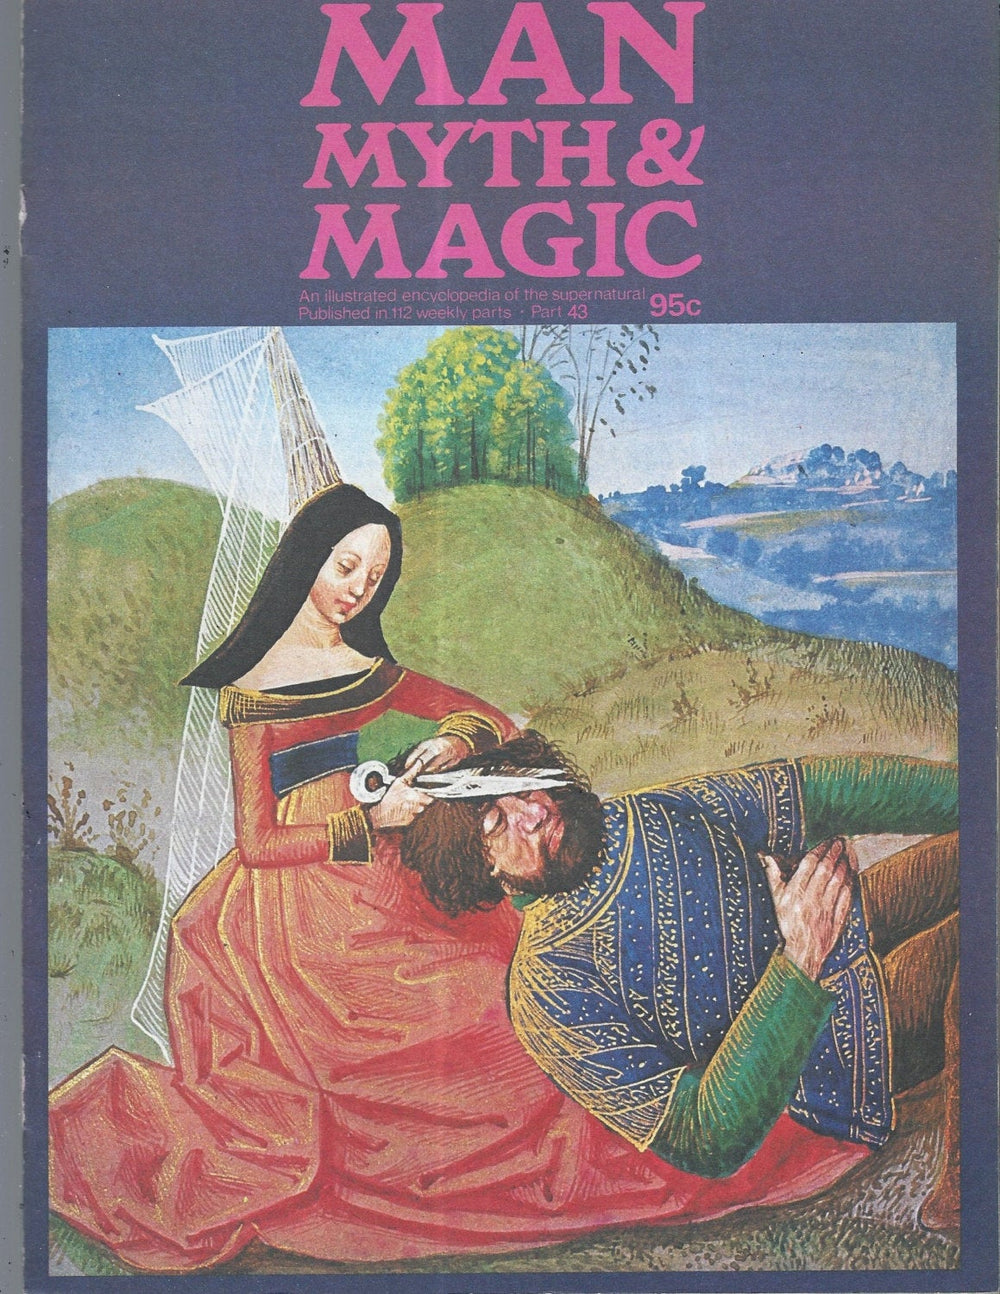 Man, Myth and Magic Part 43 Magazine by Richard Cavendish 1970